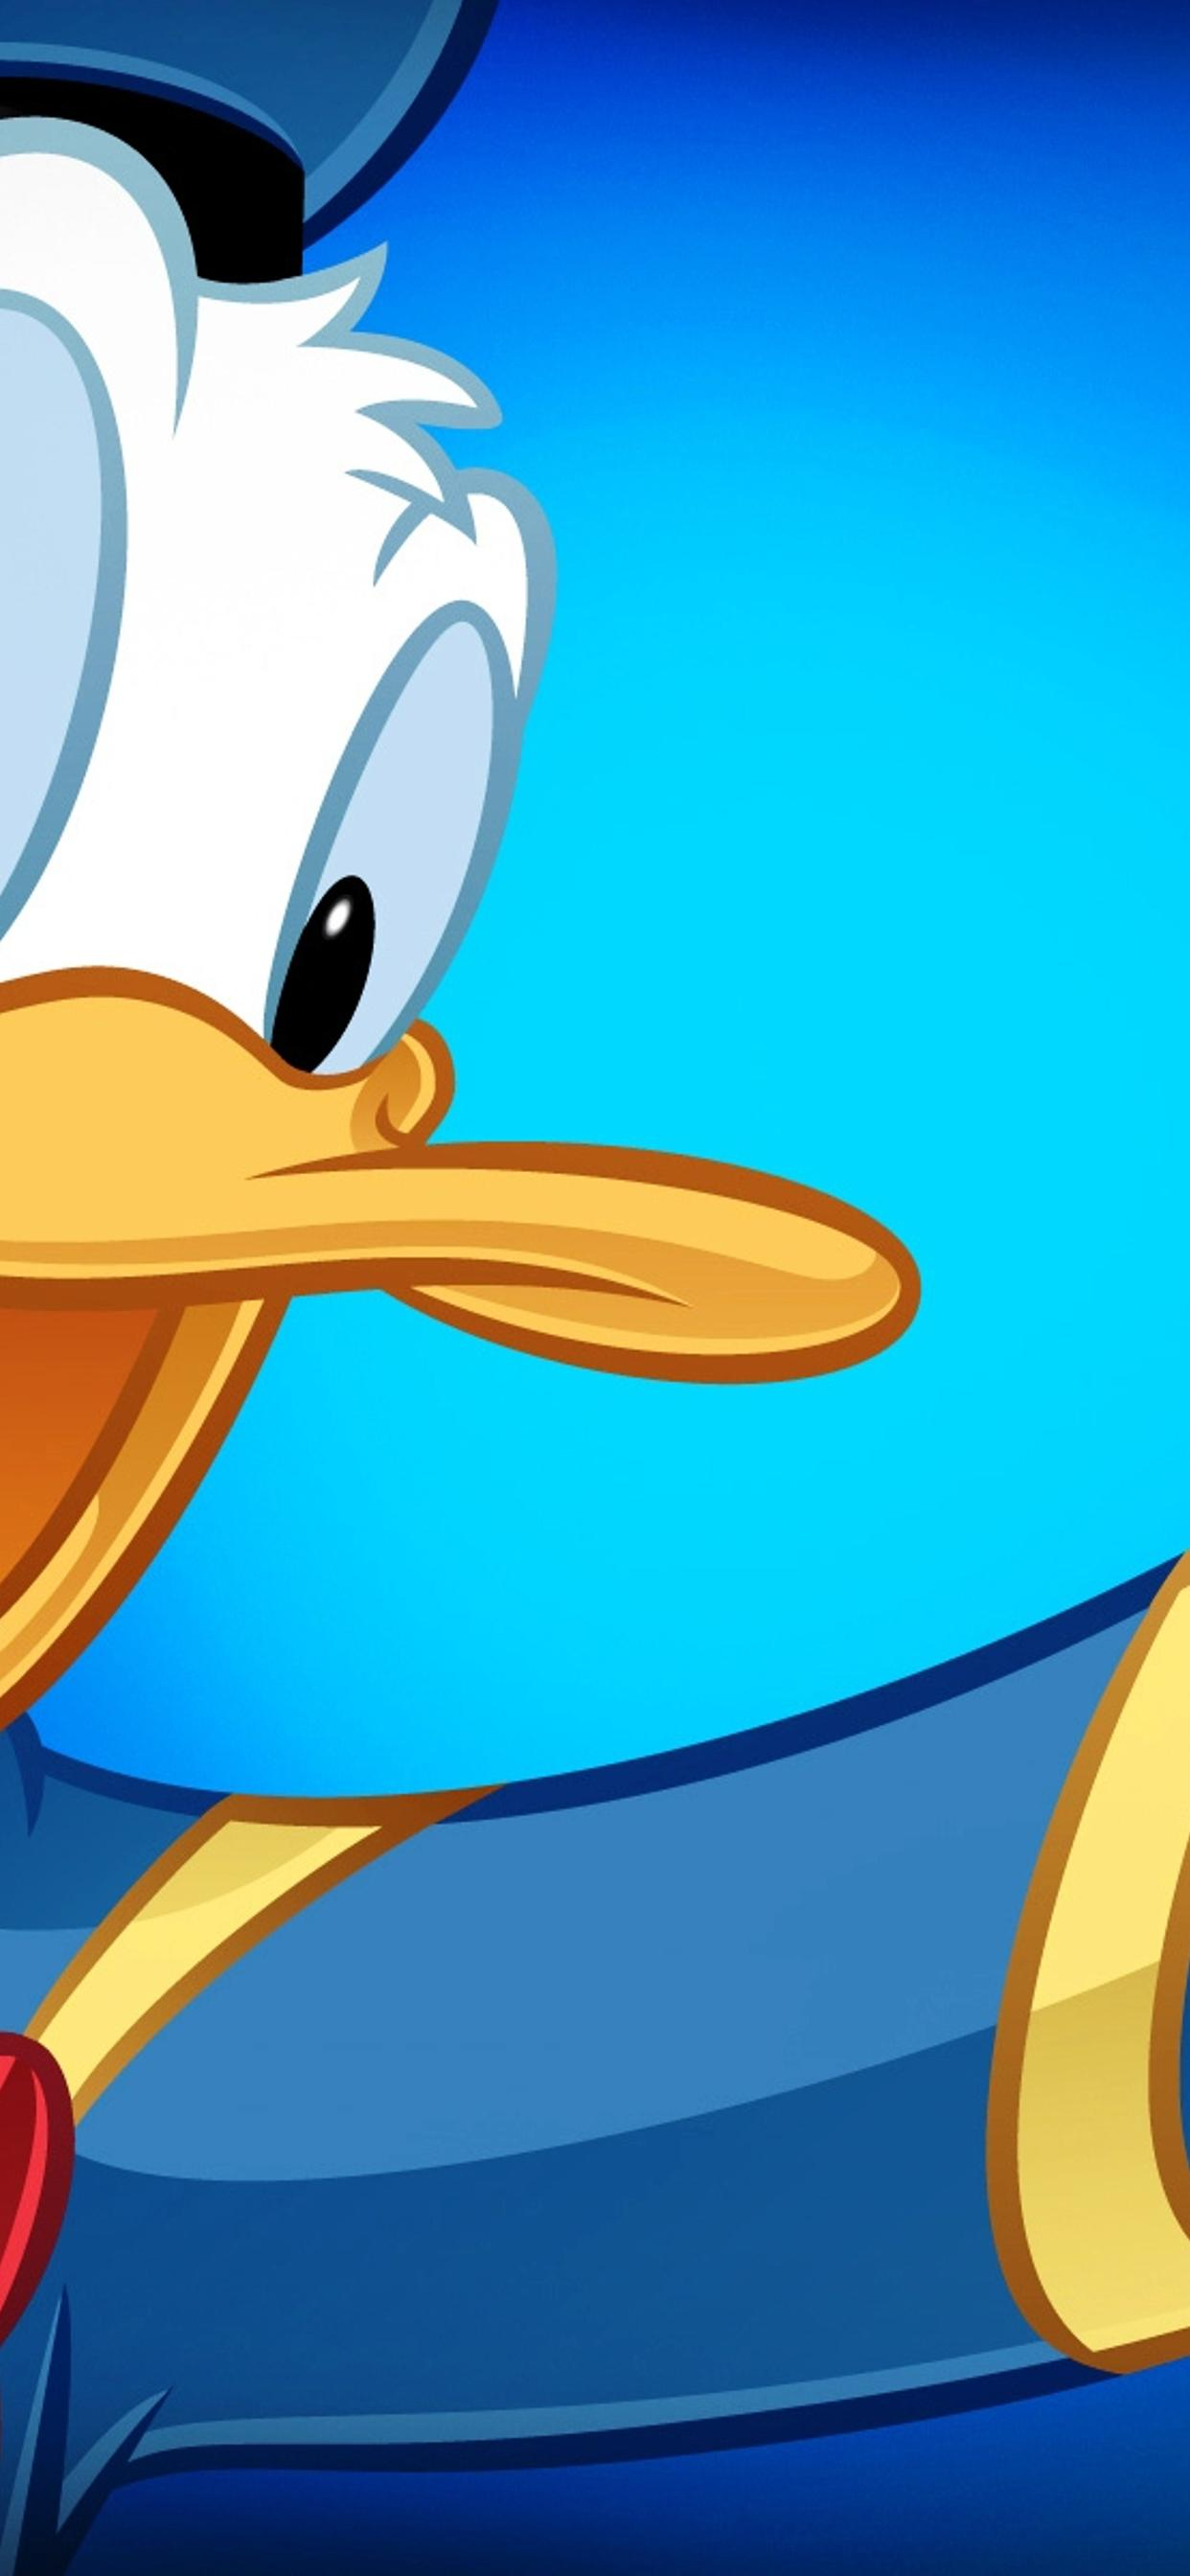 Donald Duck In Blue Cartoon Wallpaper